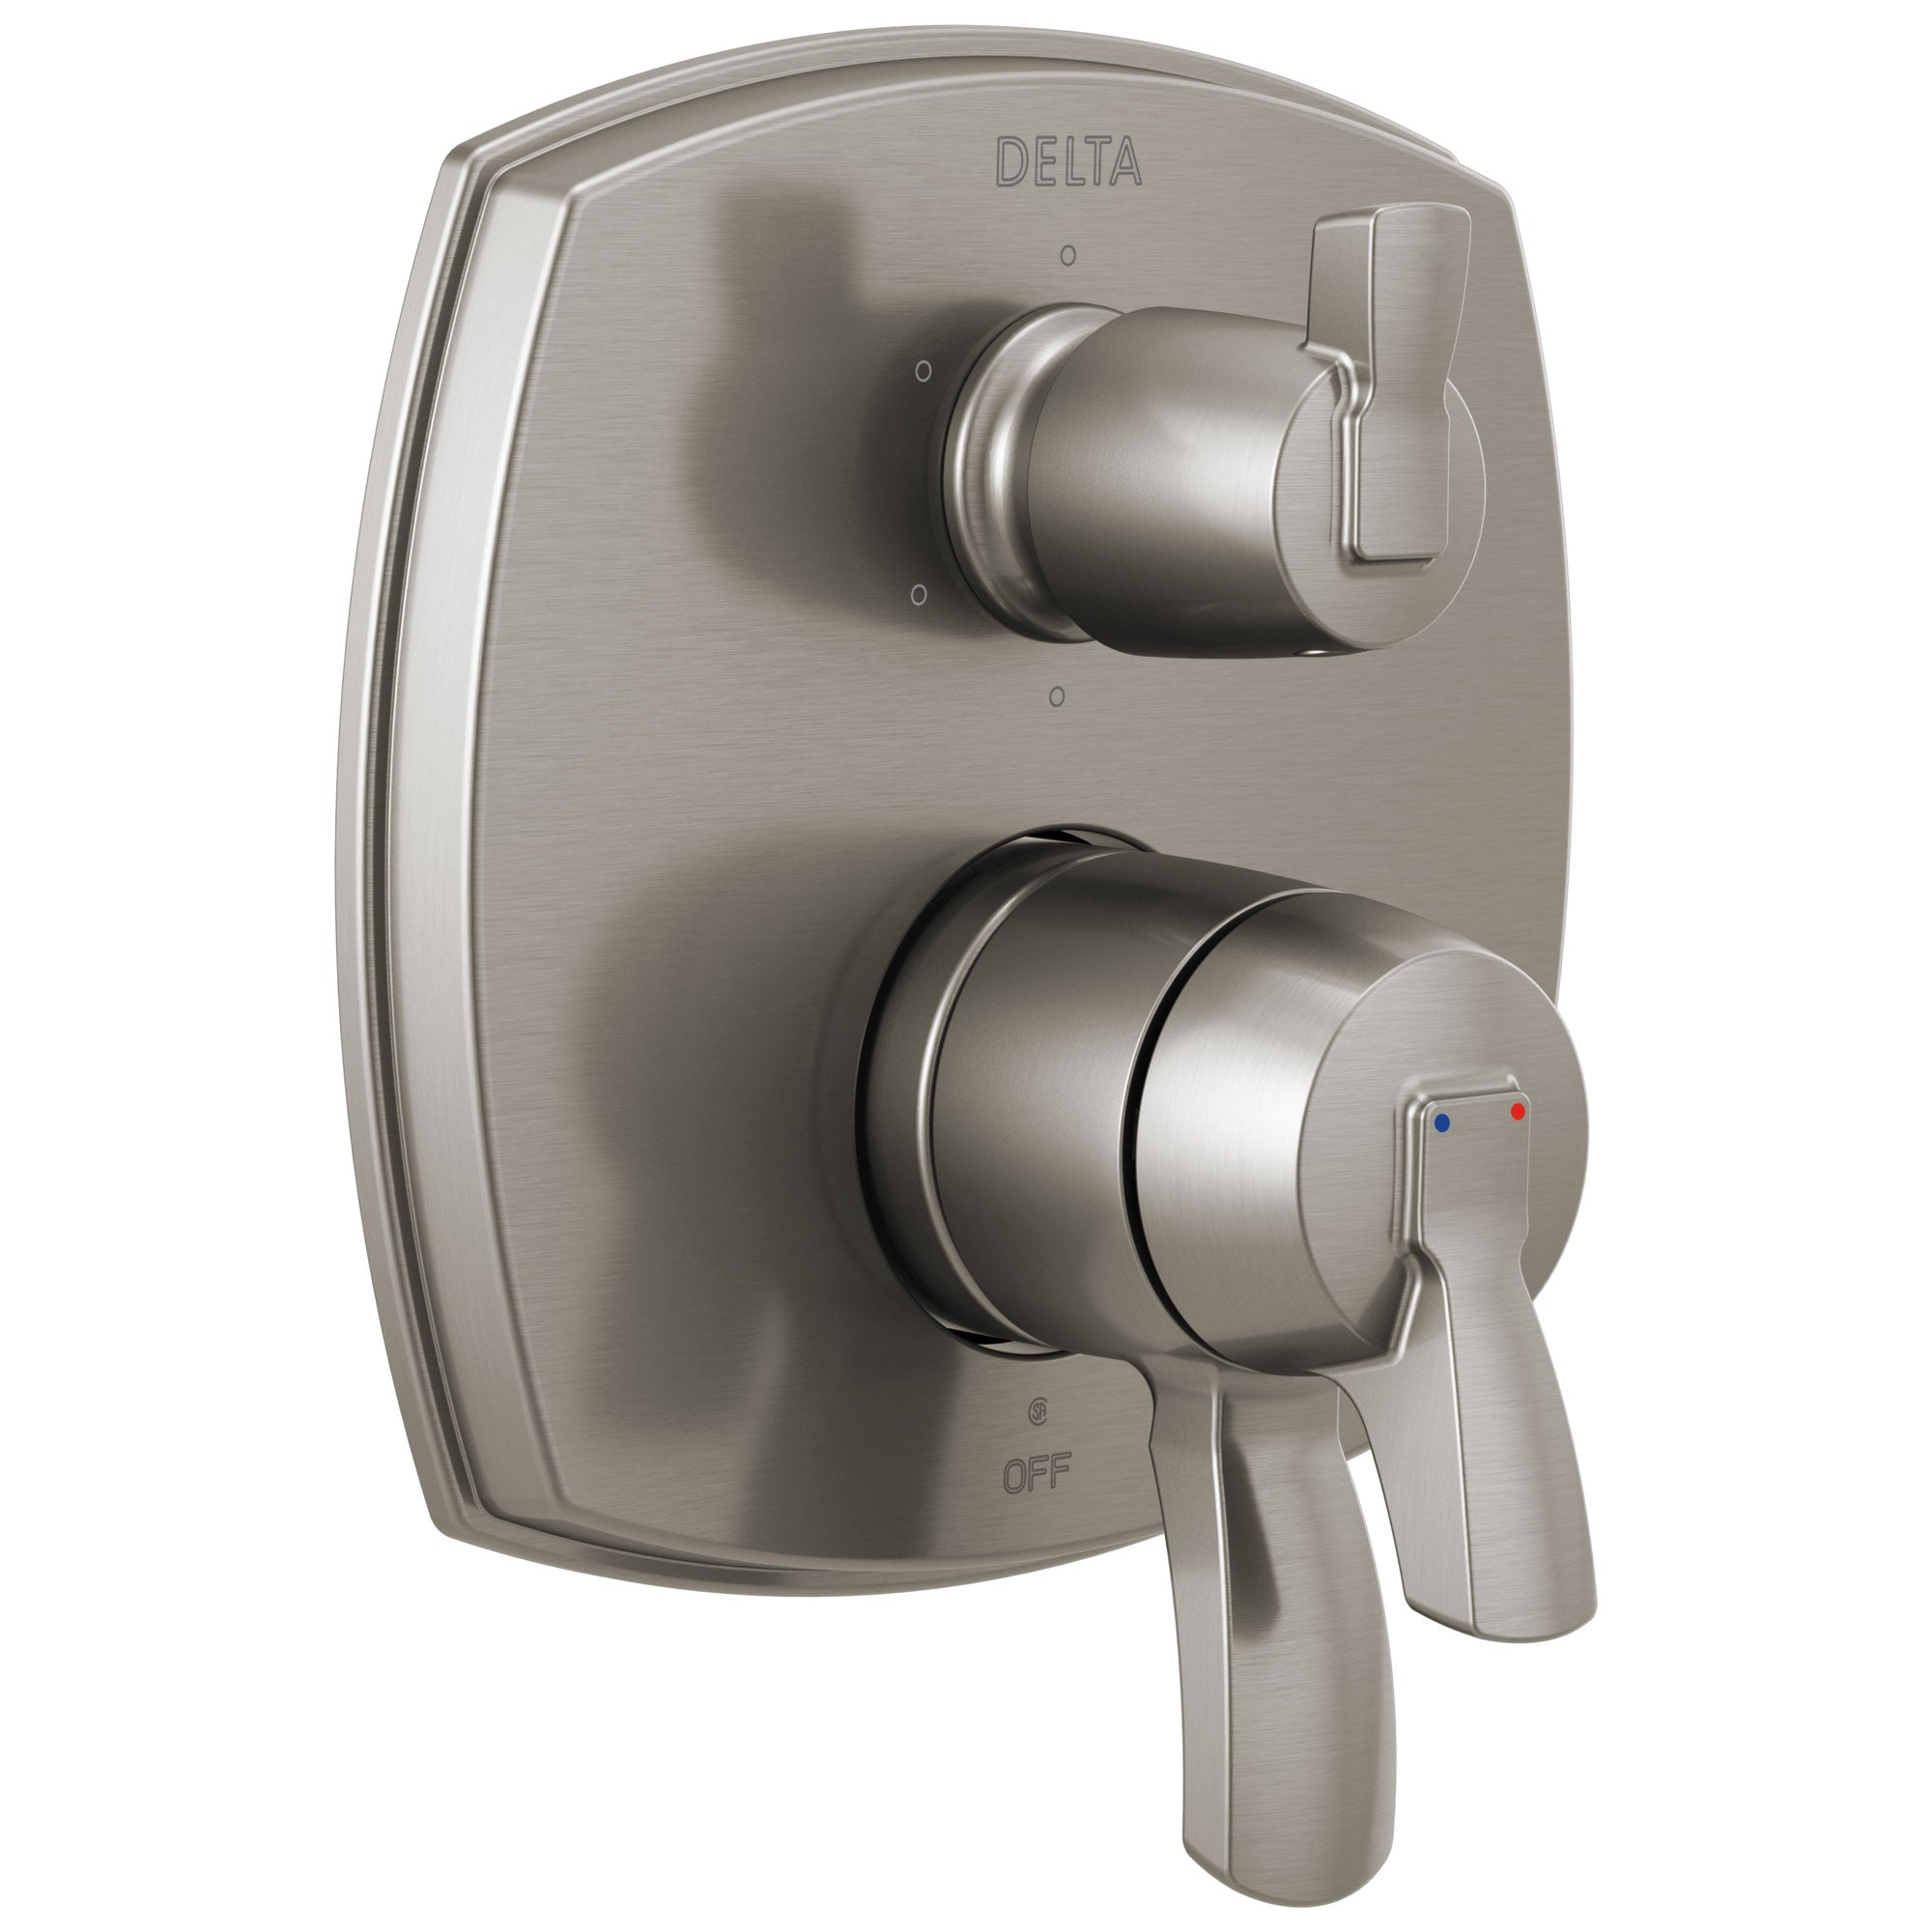 Delta Stryke Stainless Steel Finish 6 Function Lever Handle Integrated Diverter 17 Series Shower System Control Includes Valve and Handles D3702V